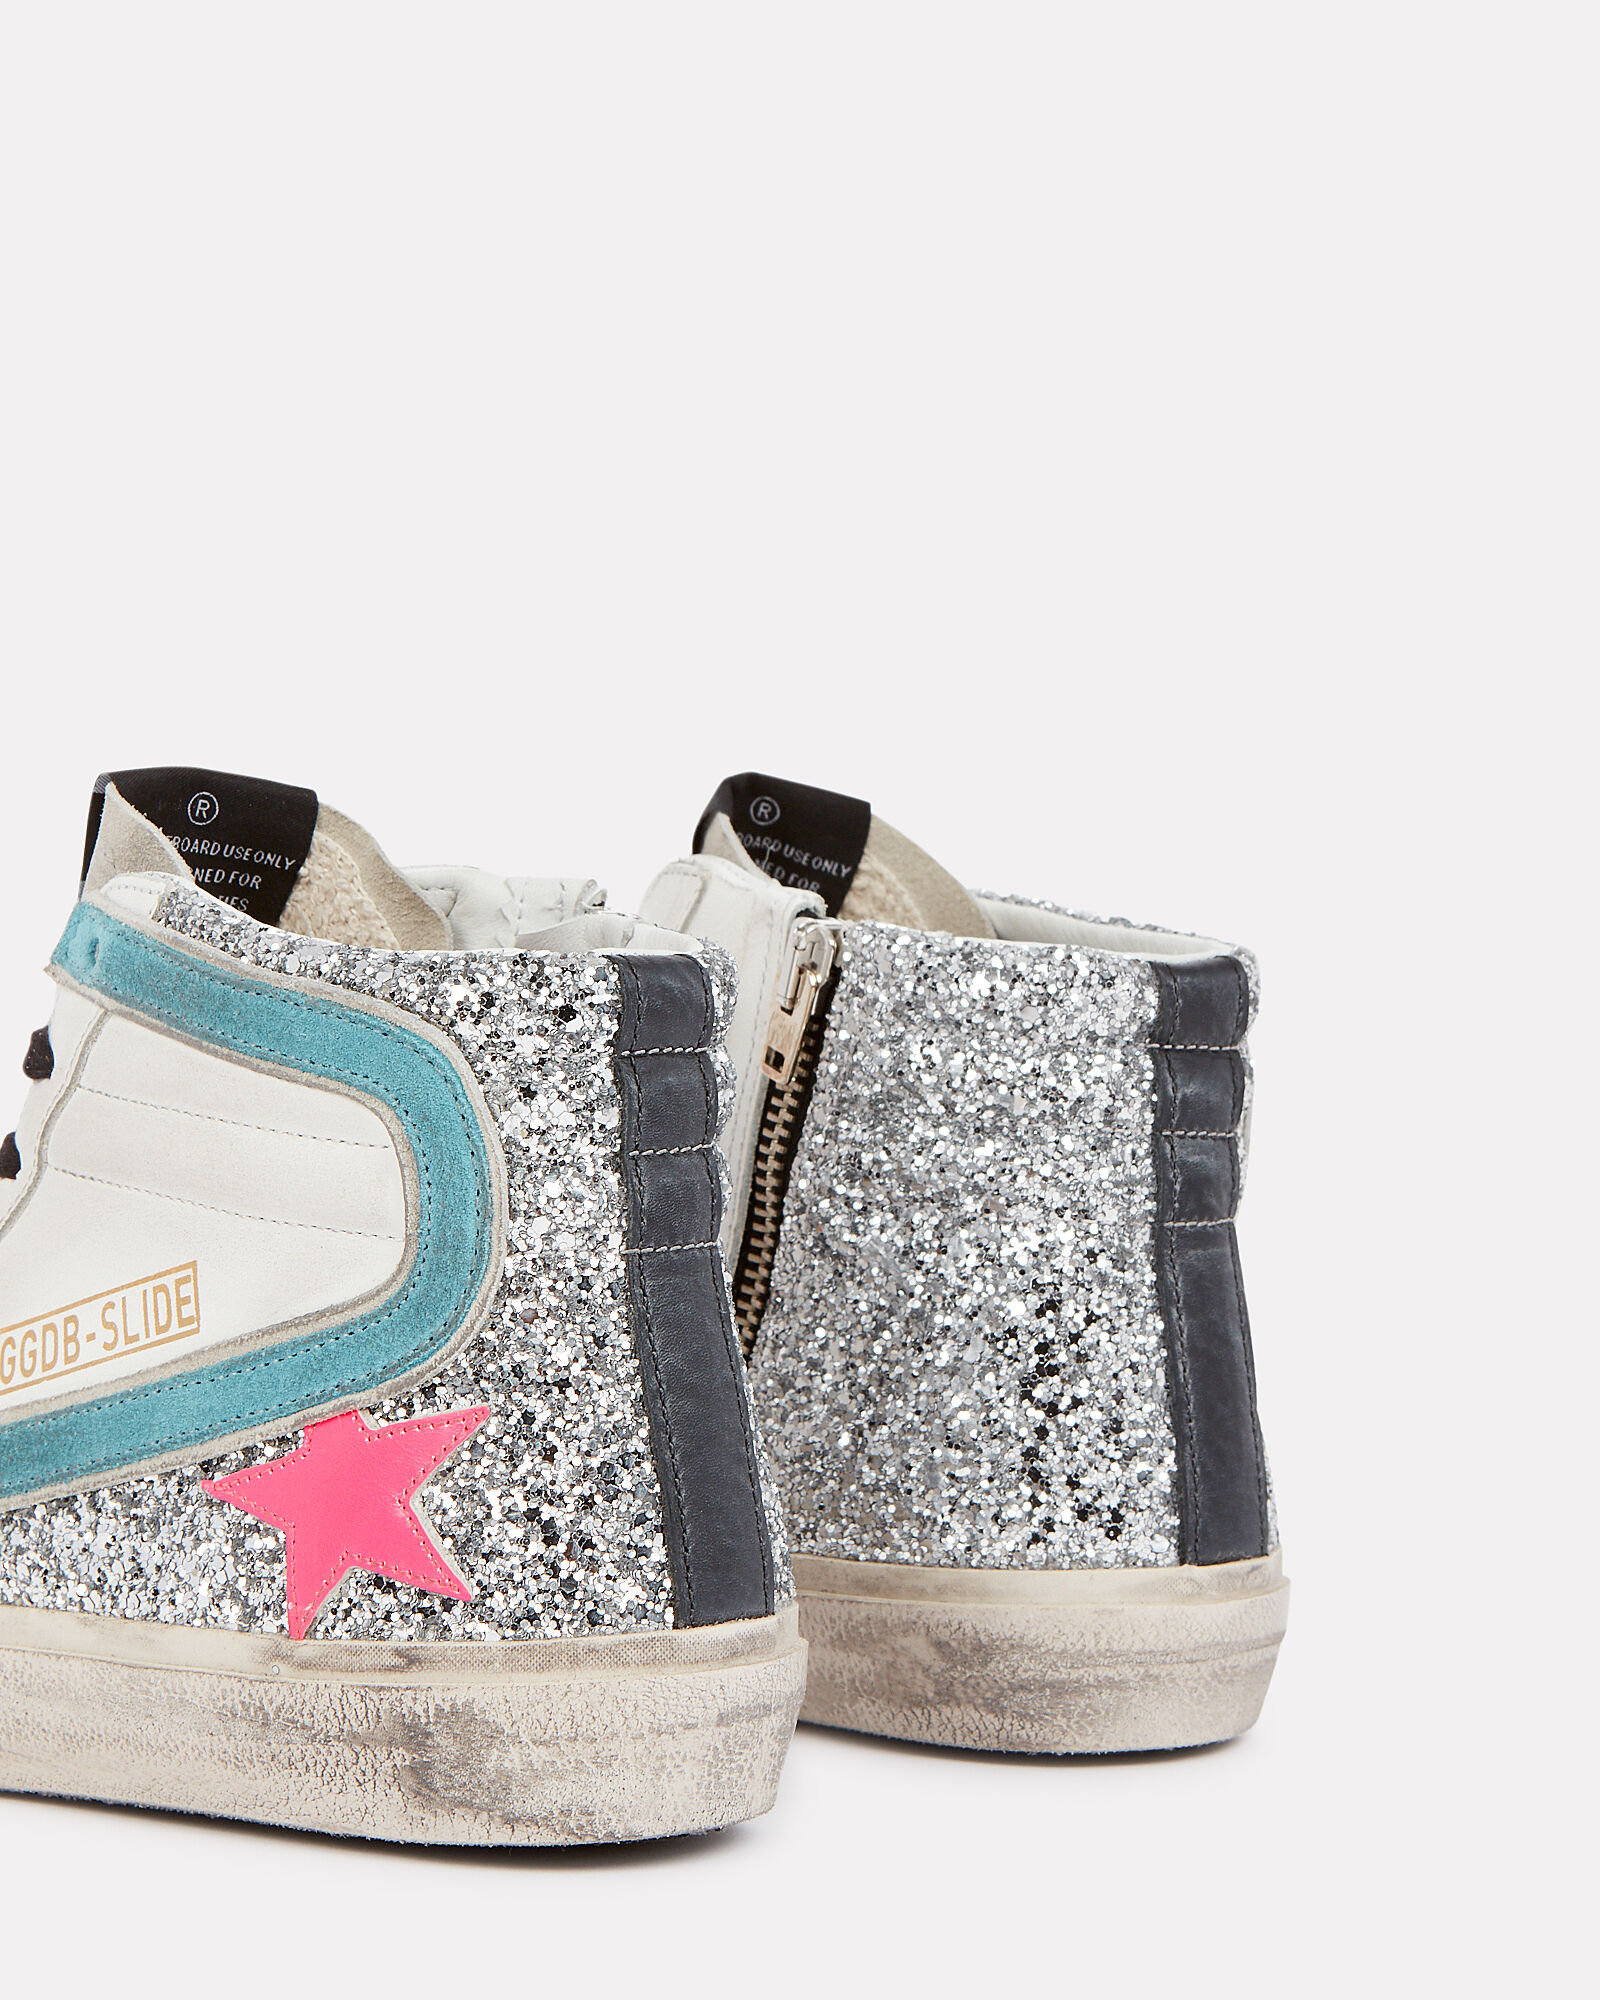 Slide Glitter High-Top Sneakers, SILVER/WHITE, hi-res